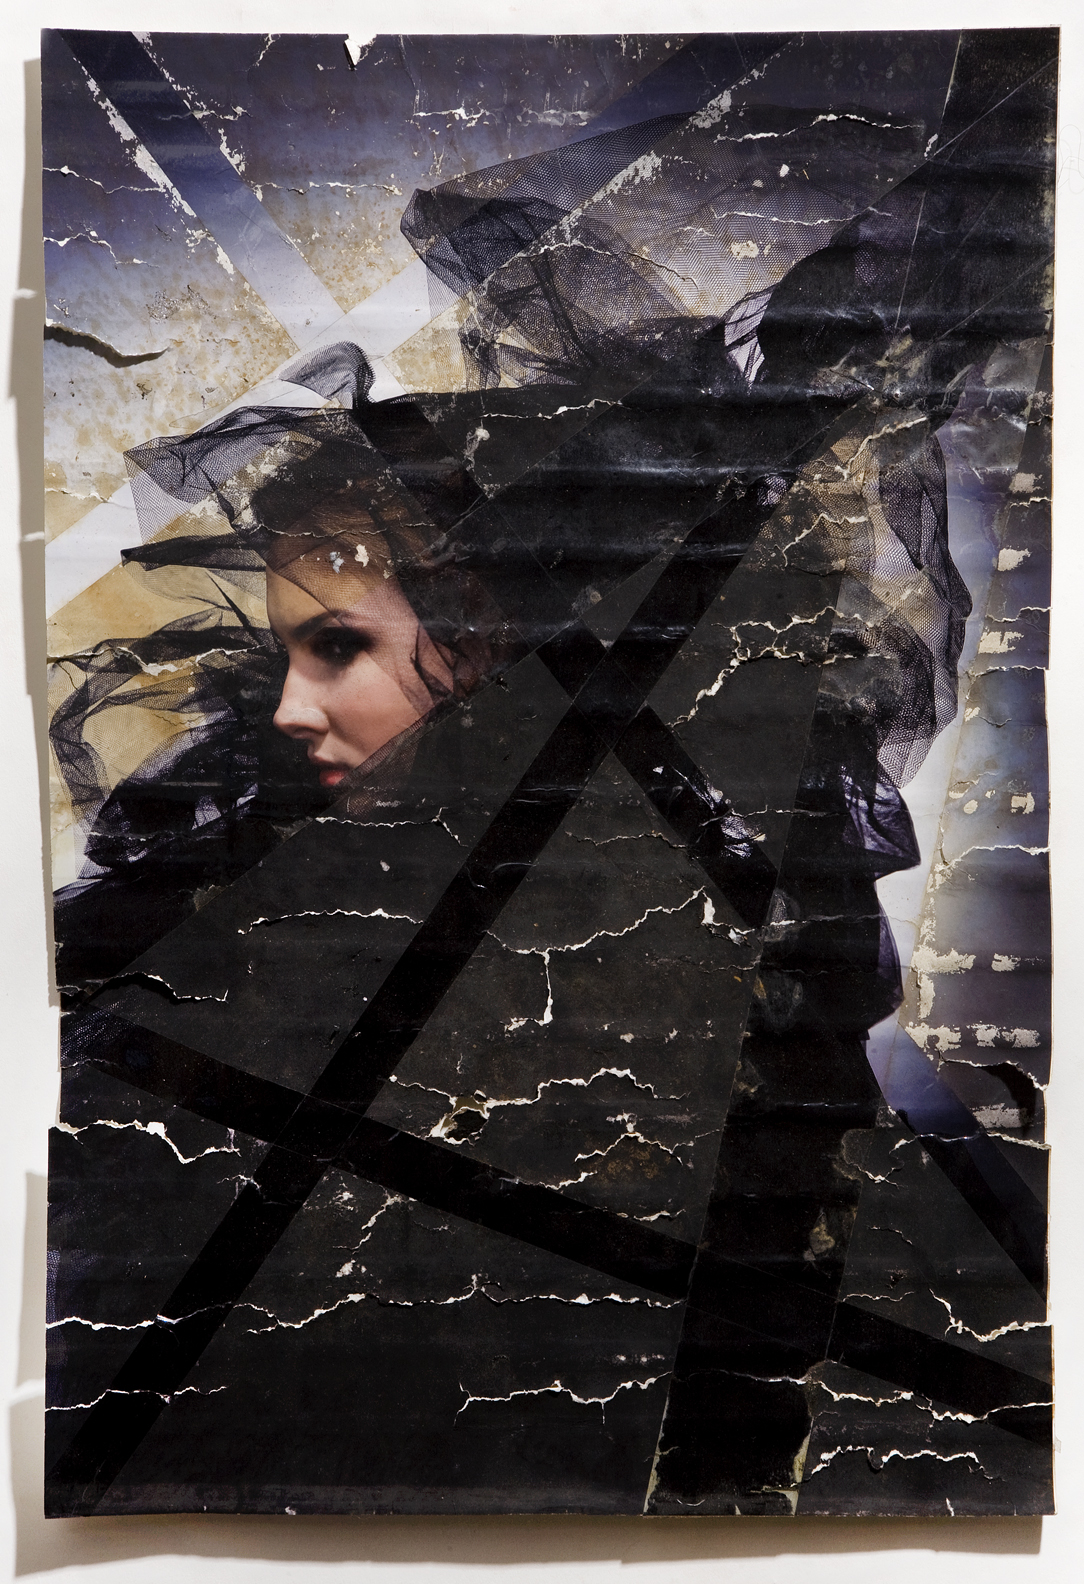 "Olga, inkjet print, packing tape, coffee, coffee grounds, milk, 13""x19"", 2010"